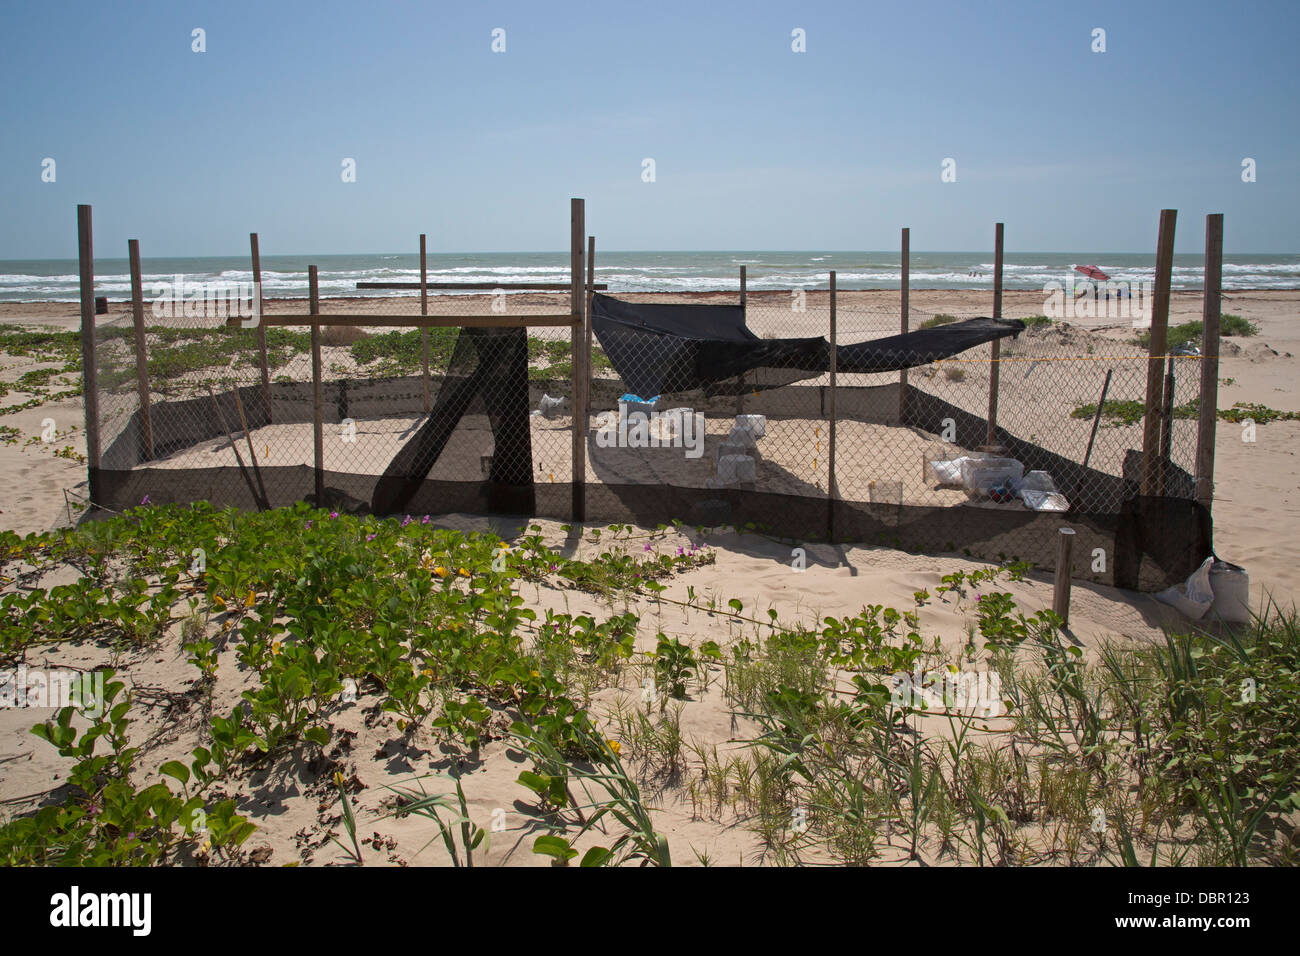 Protected sea turtle nests on South Padre Island, Texas - Stock Image